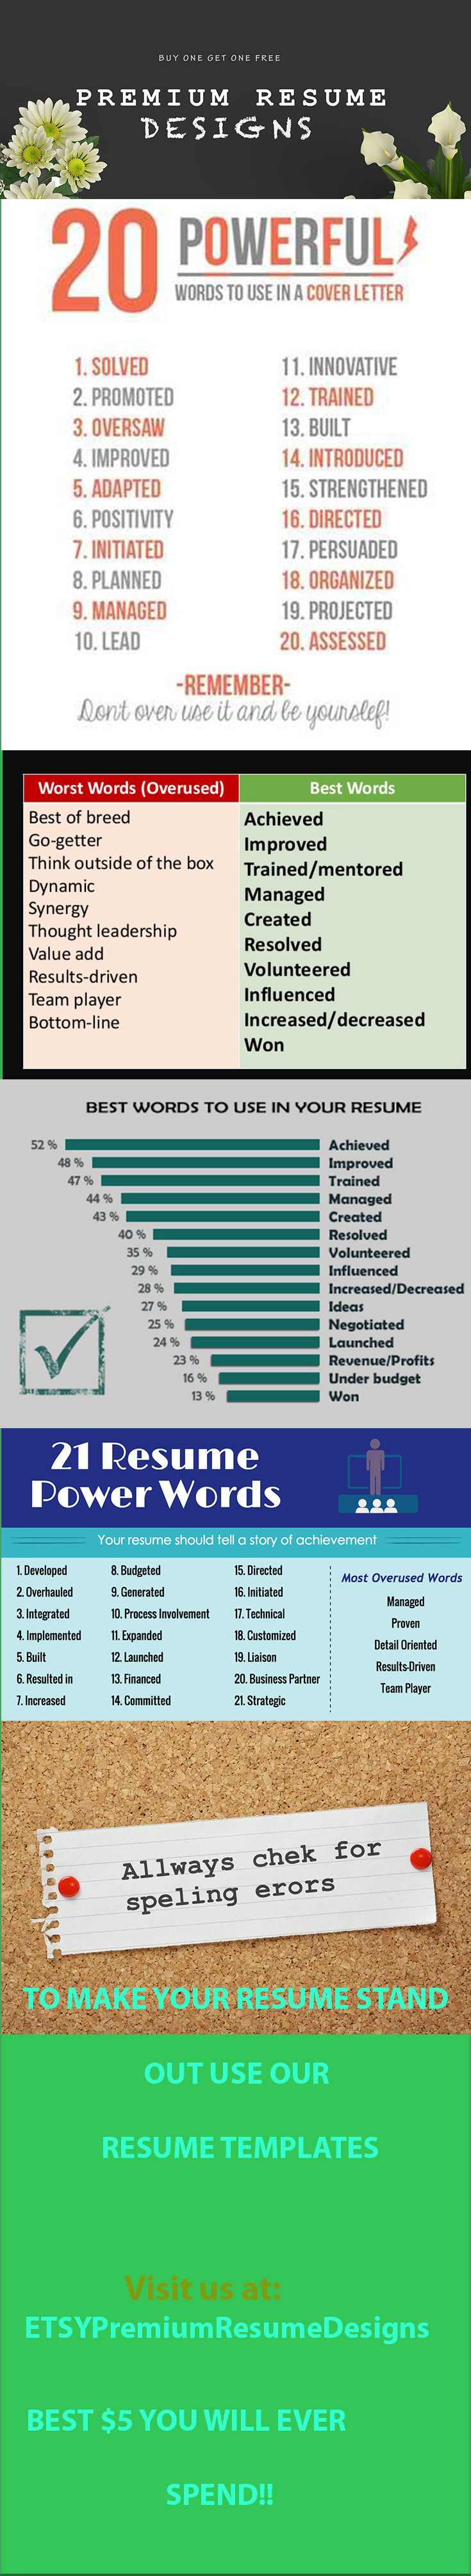 Resume Template #CV Template for Word | Professional Resume Design ...